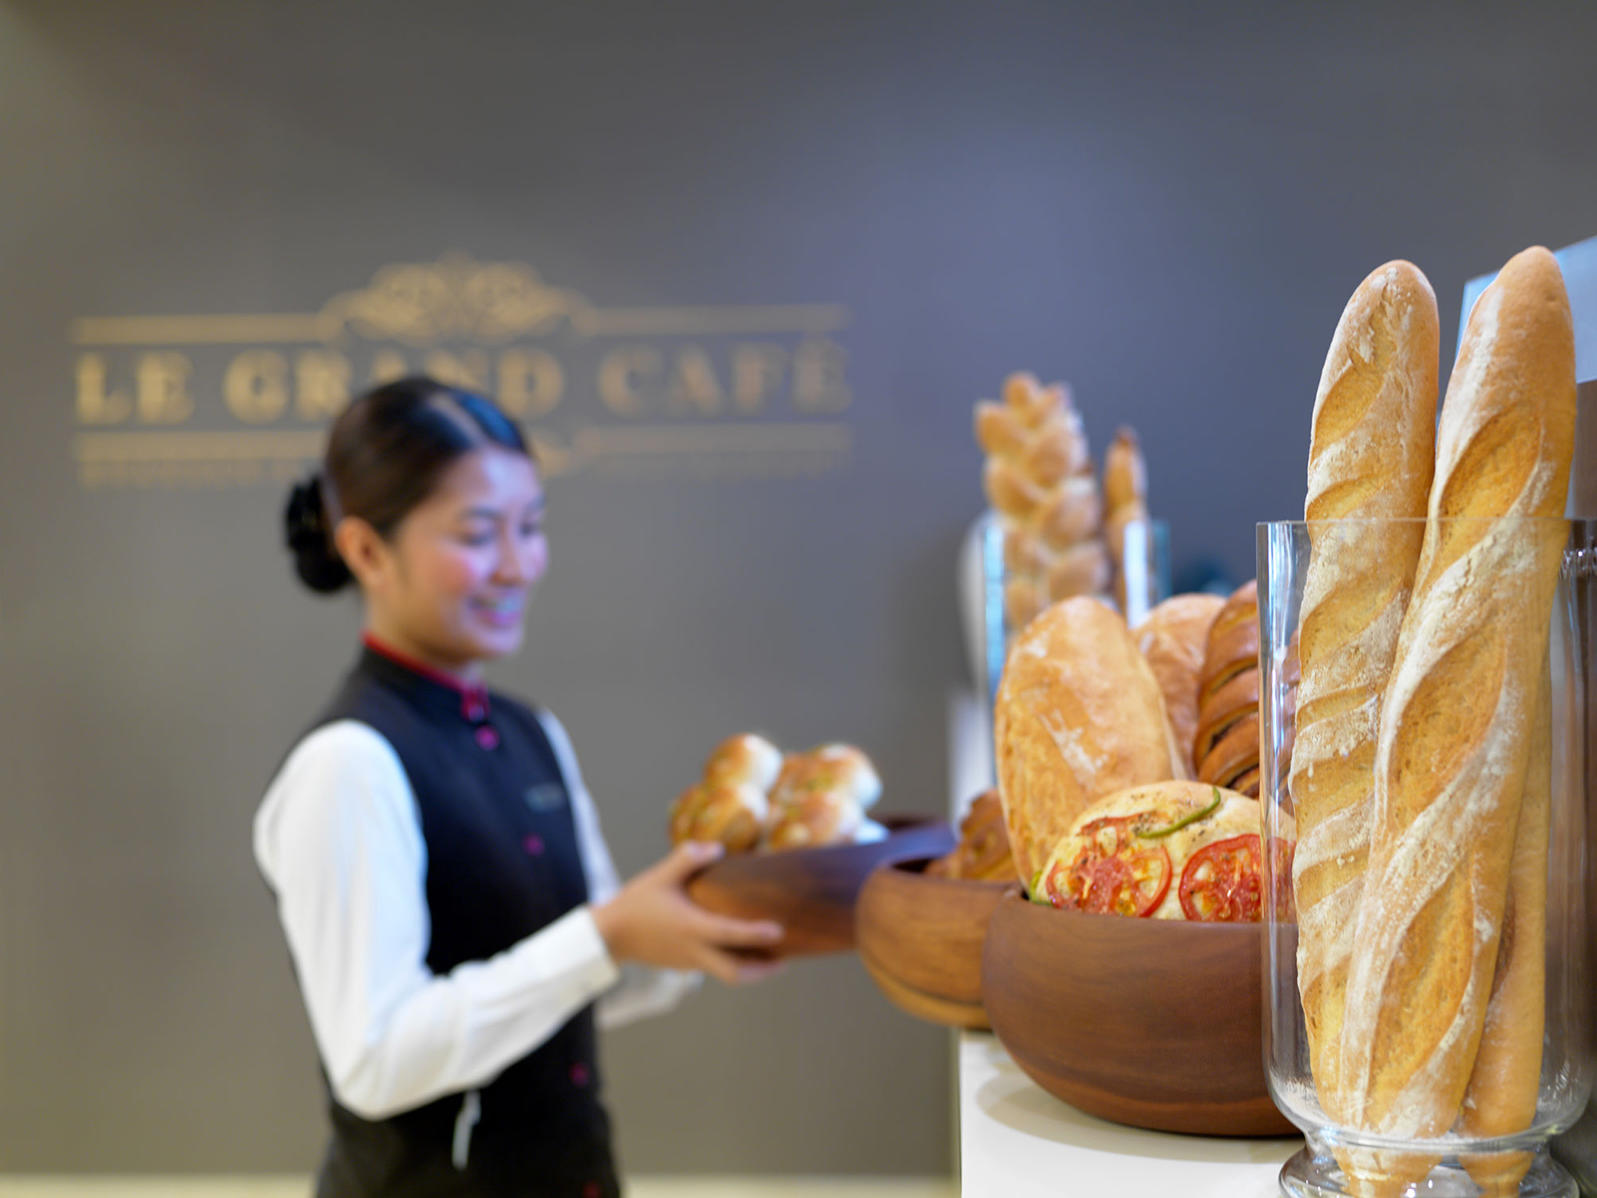 Le Grand Cafe Bread Two Seasons Hotel